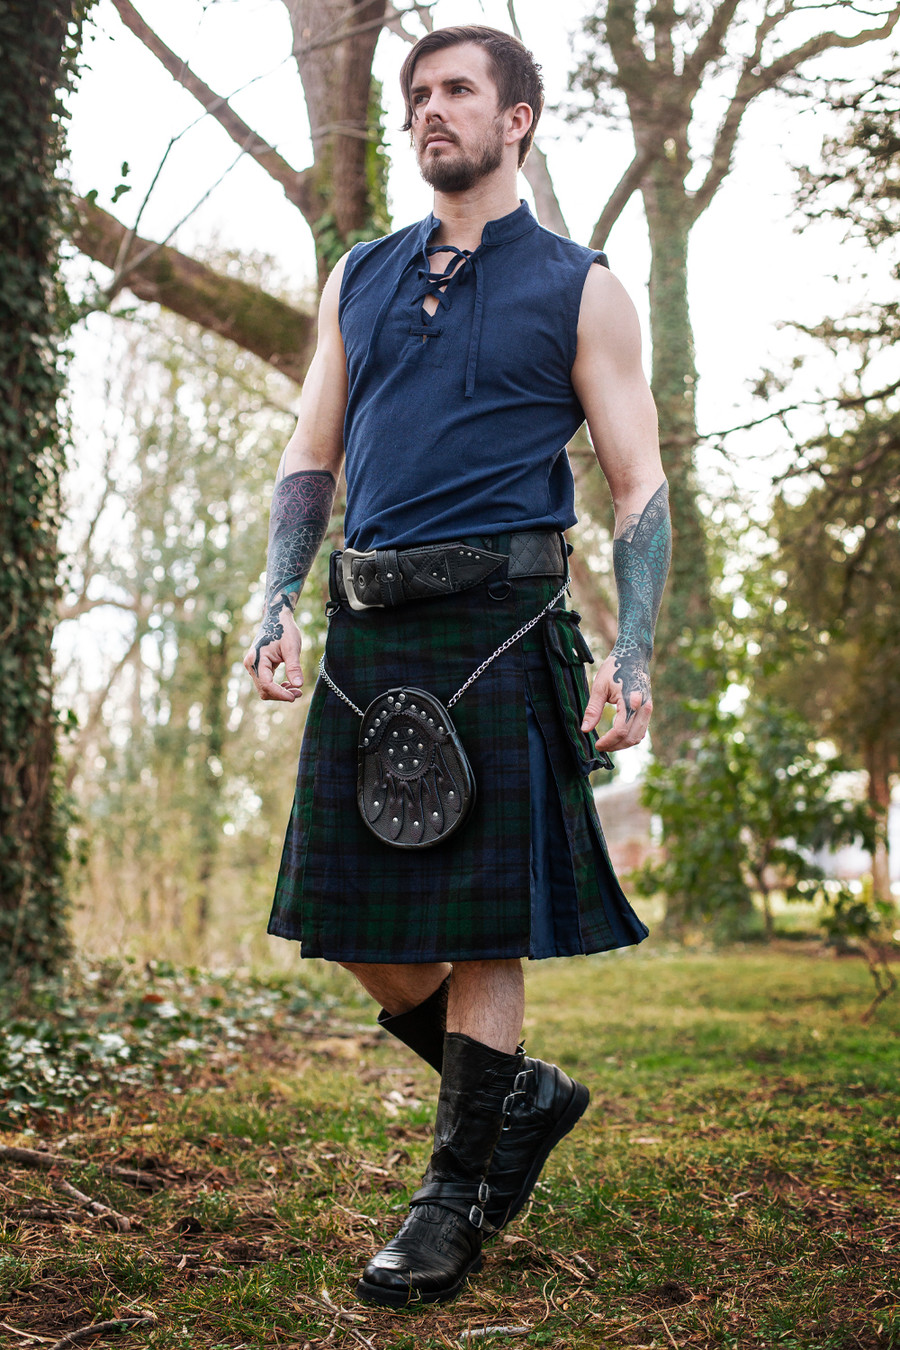 Versatta Blackwatch Inverted Hybrid Tartan Kilt